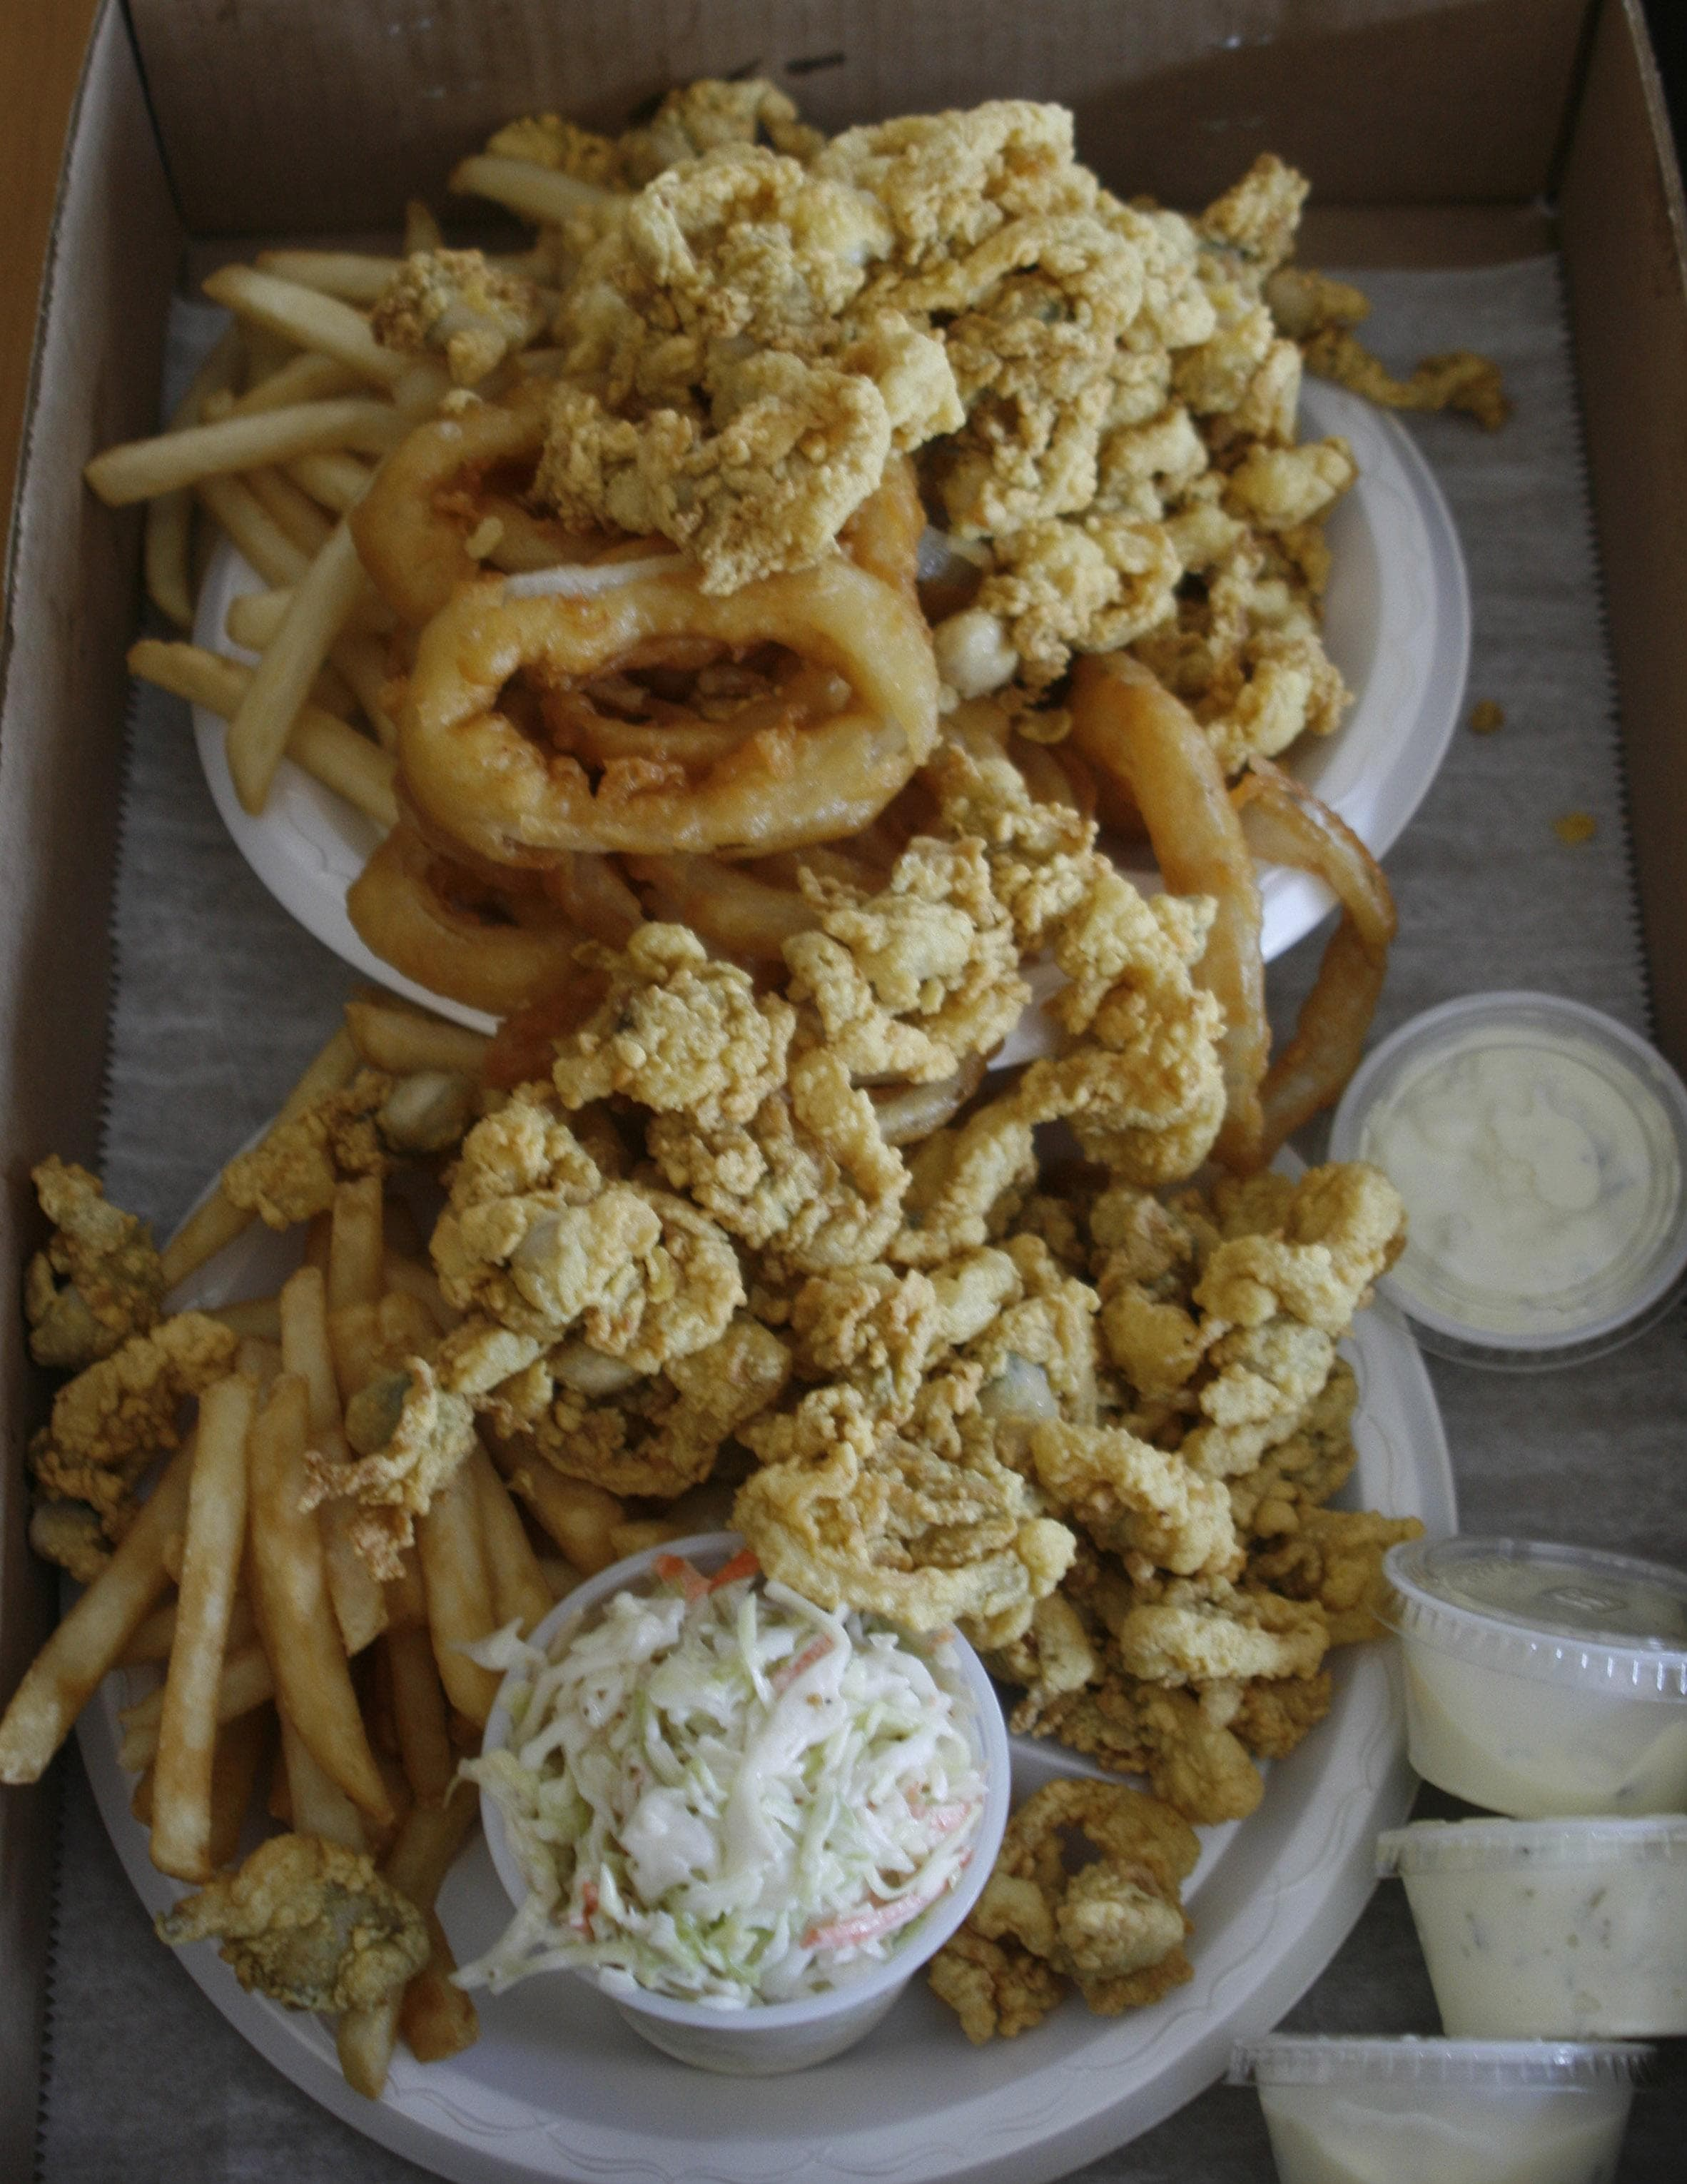 Fried clams on Random Most Delicious Foods to Dunk of Deep Fry